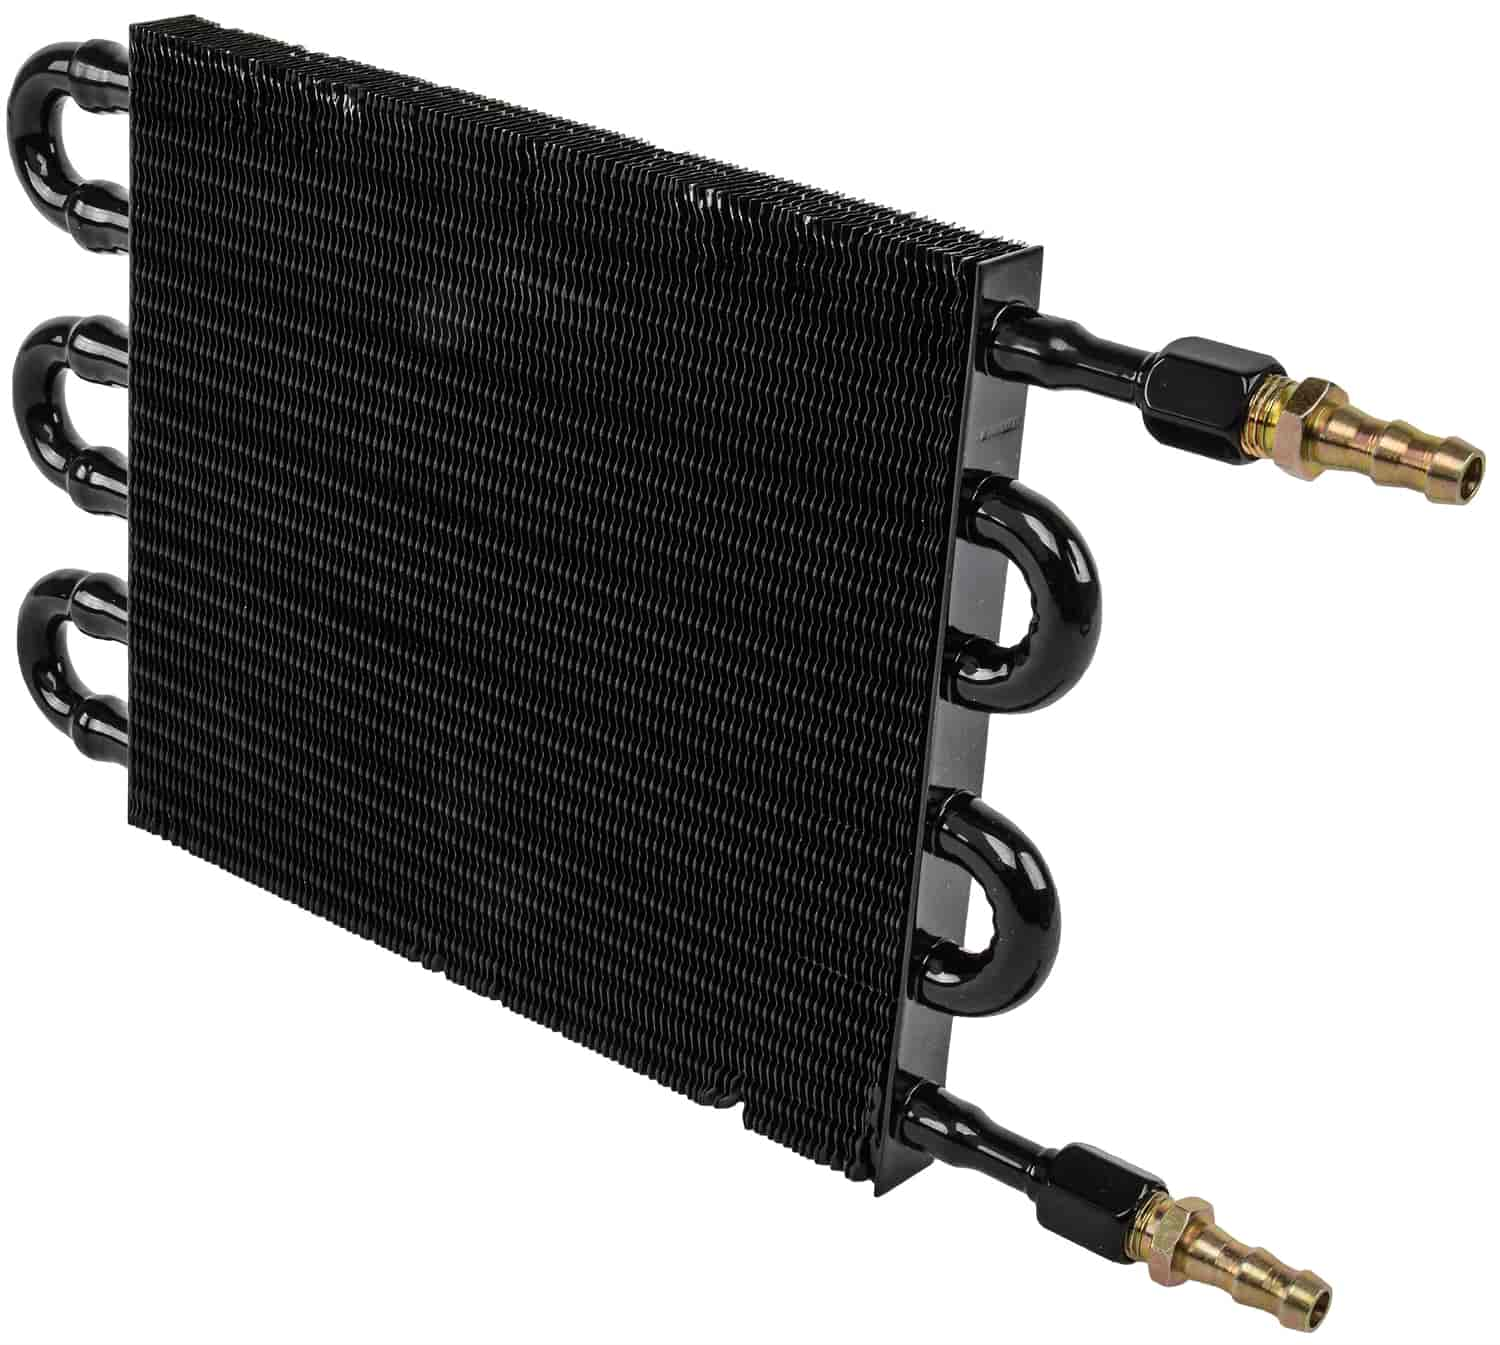 JEGS Performance Products 60377 - JEGS High-Performance Transmission Coolers